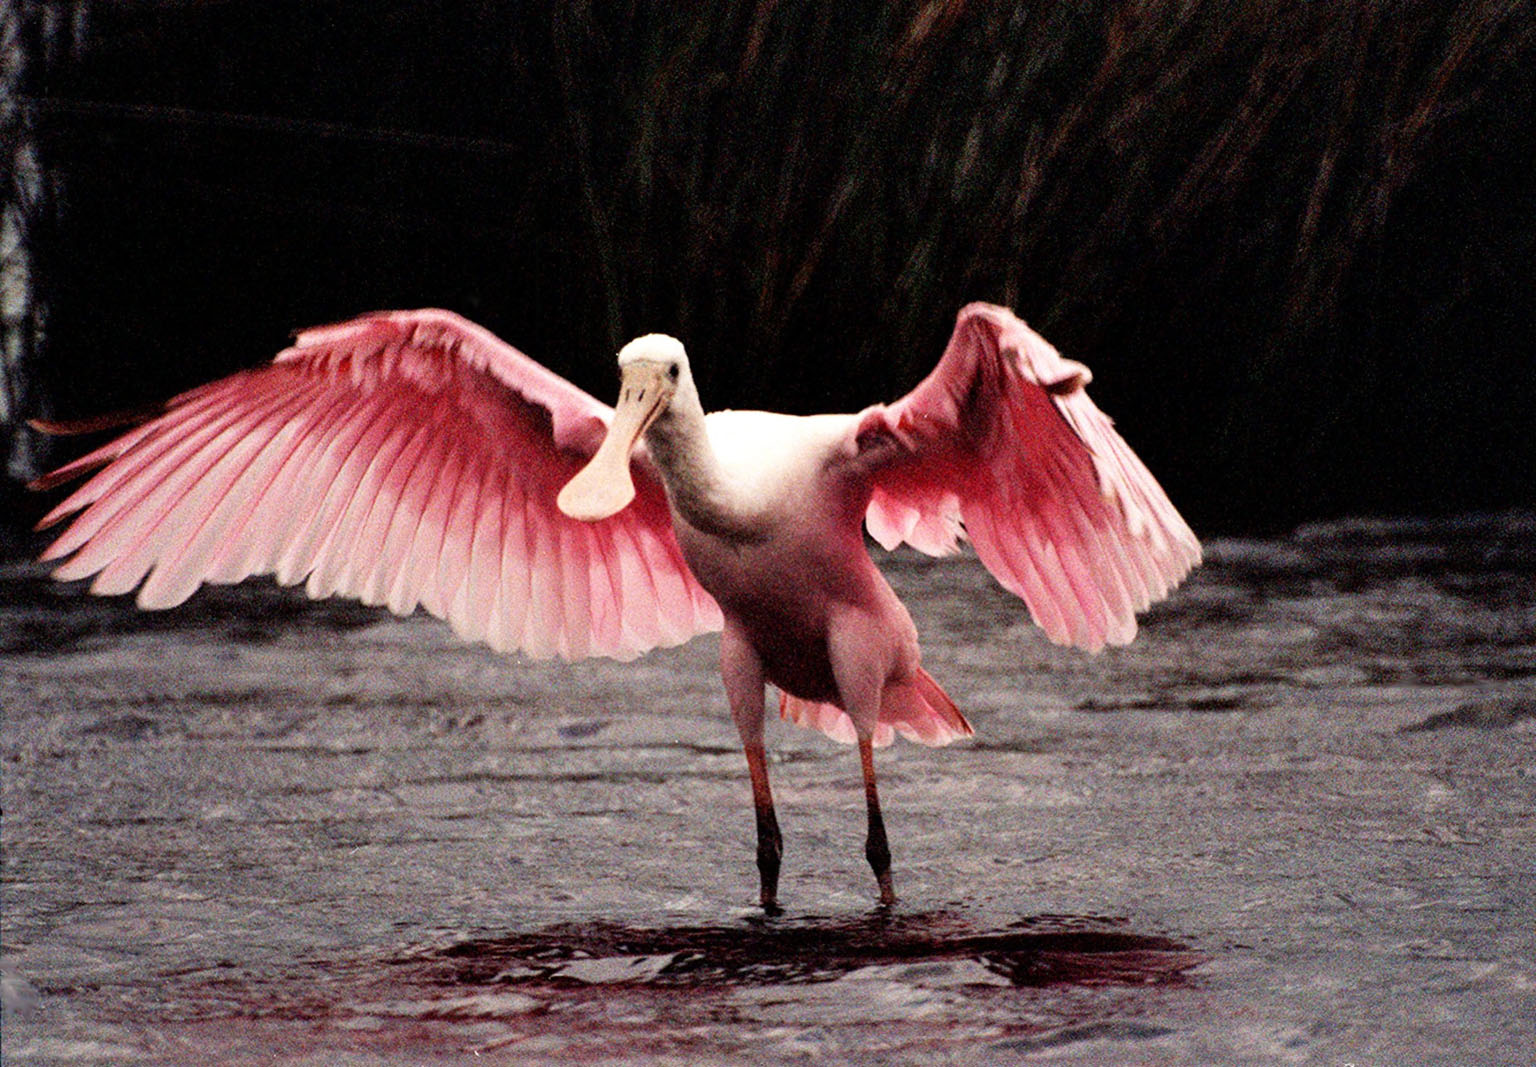 KENNEDY SPACE CENTER, FLA. -- A female roseate spoonbill displays her colorful wings in a mating ritual in Merritt Island National Wildlife Refuge. The birds, named for their brilliant pink color and paddle-shaped bill, feed in shallow water by swinging their bill back and forth, scooping up small fish and crustaceans. They typically inhabit mangroves on the coasts of southern Florida, Louisiana and Texas. The 92,000-acre refuge, which shares a boundary with Kennedy Space Center, is a habitat for more than 330 species of birds, 31 mammals, 117 fishes and 65 amphibians and reptiles. The marshes and open water of the refuge provide wintering areas for 23 species of migratory waterfowl, as well as a year-round home for great blue herons, great egrets, wood storks, cormorants, brown pelicans and other species of marsh and shore birds